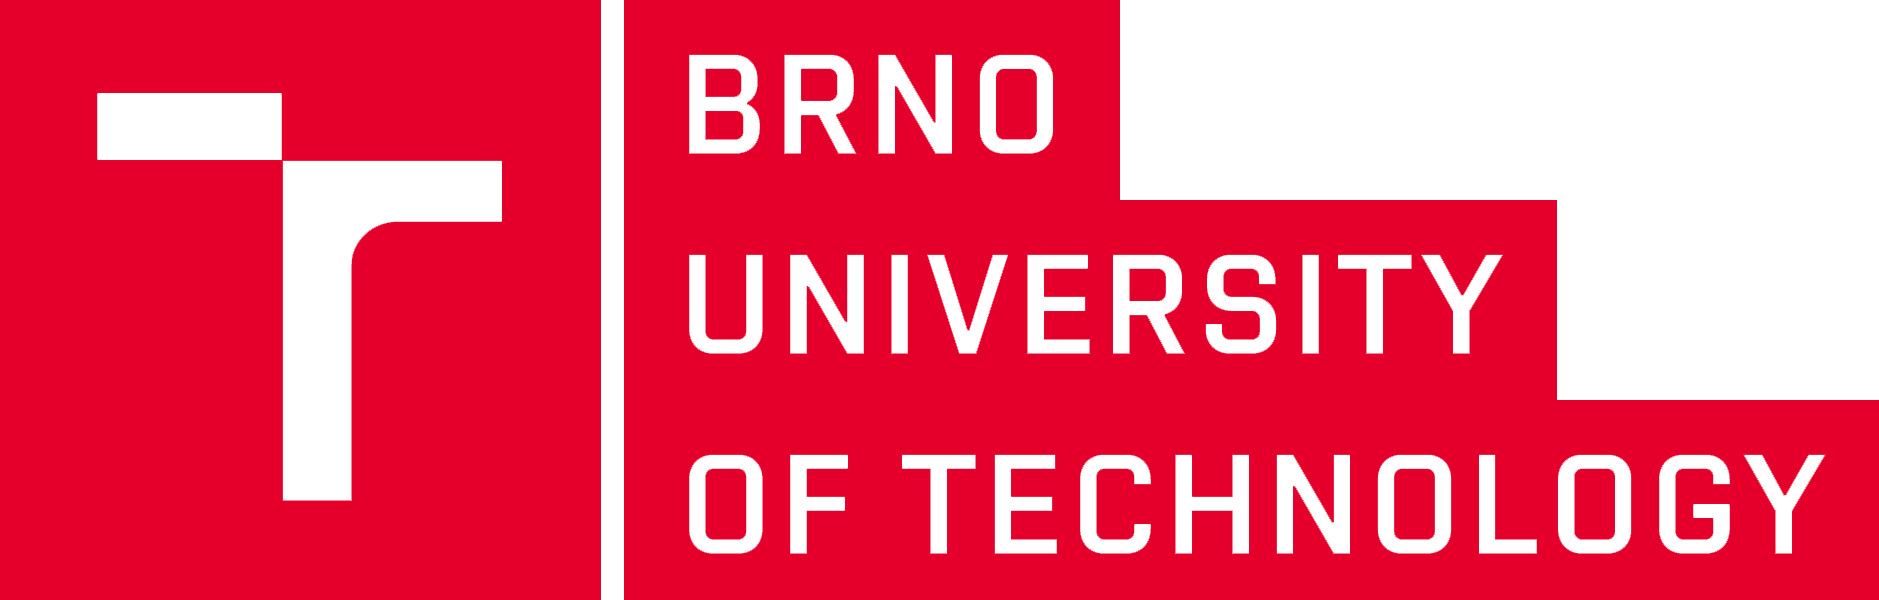 Brno University of Technology